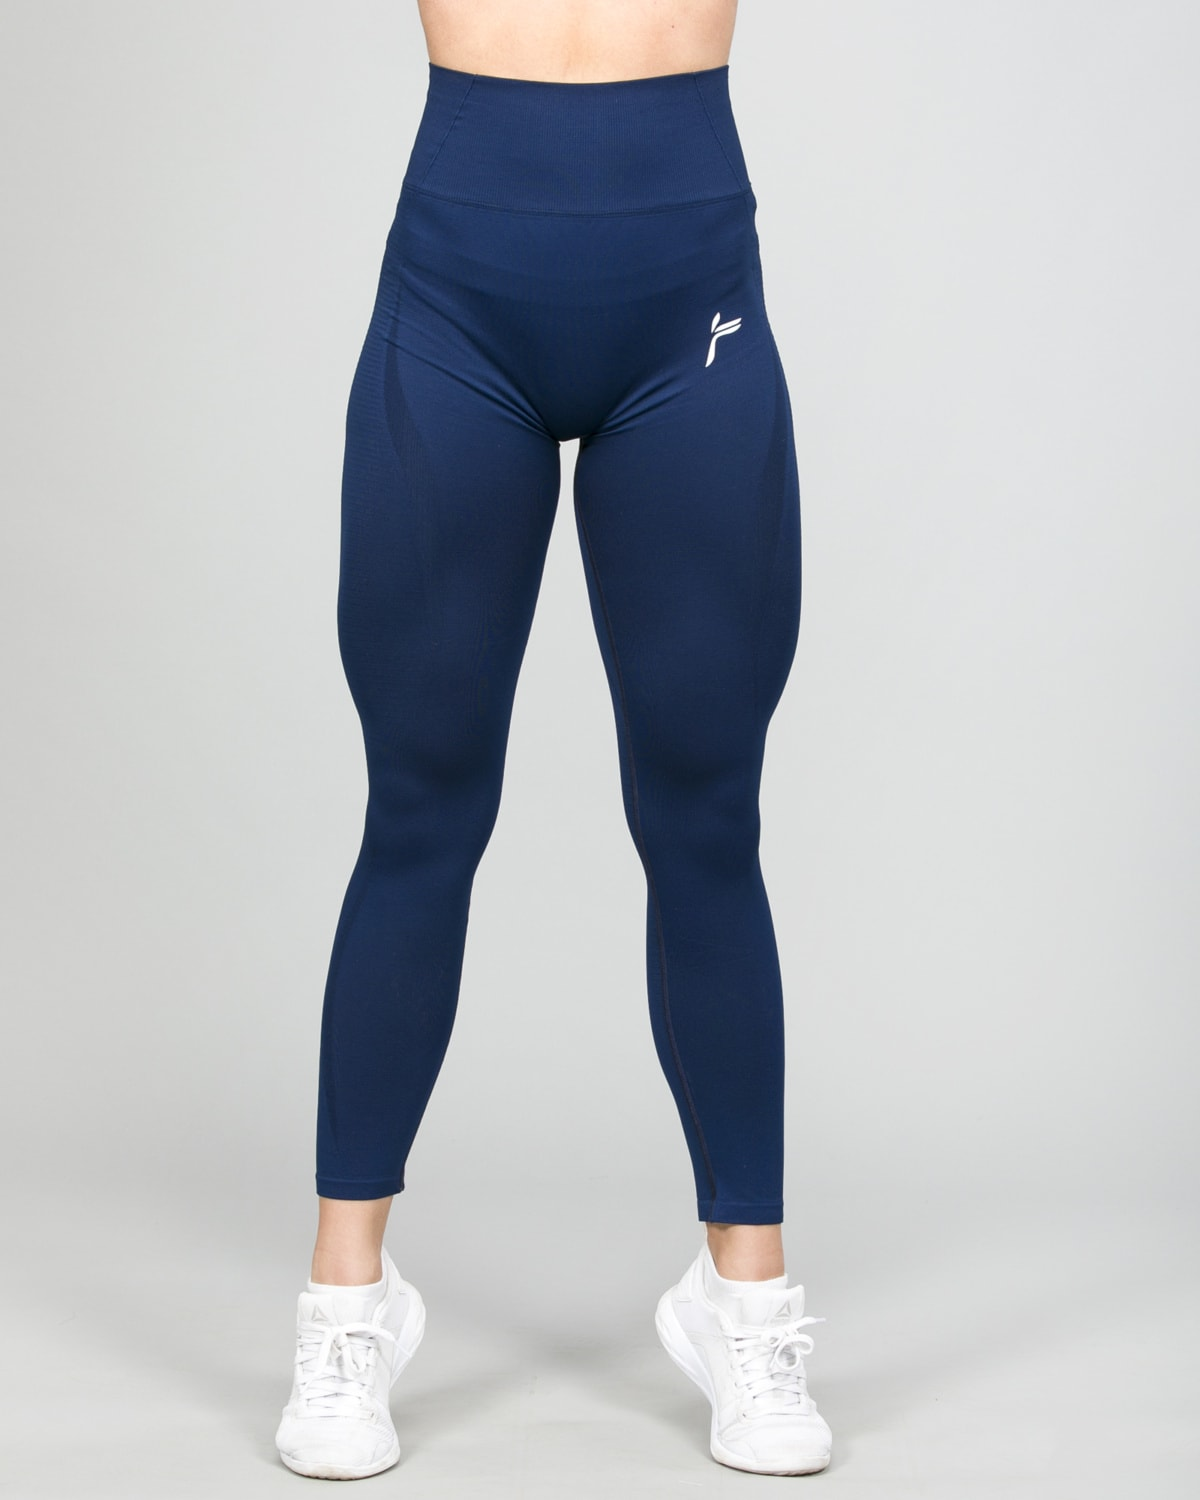 Famme Vortex Legging – Navy Blue vhwl-nv e